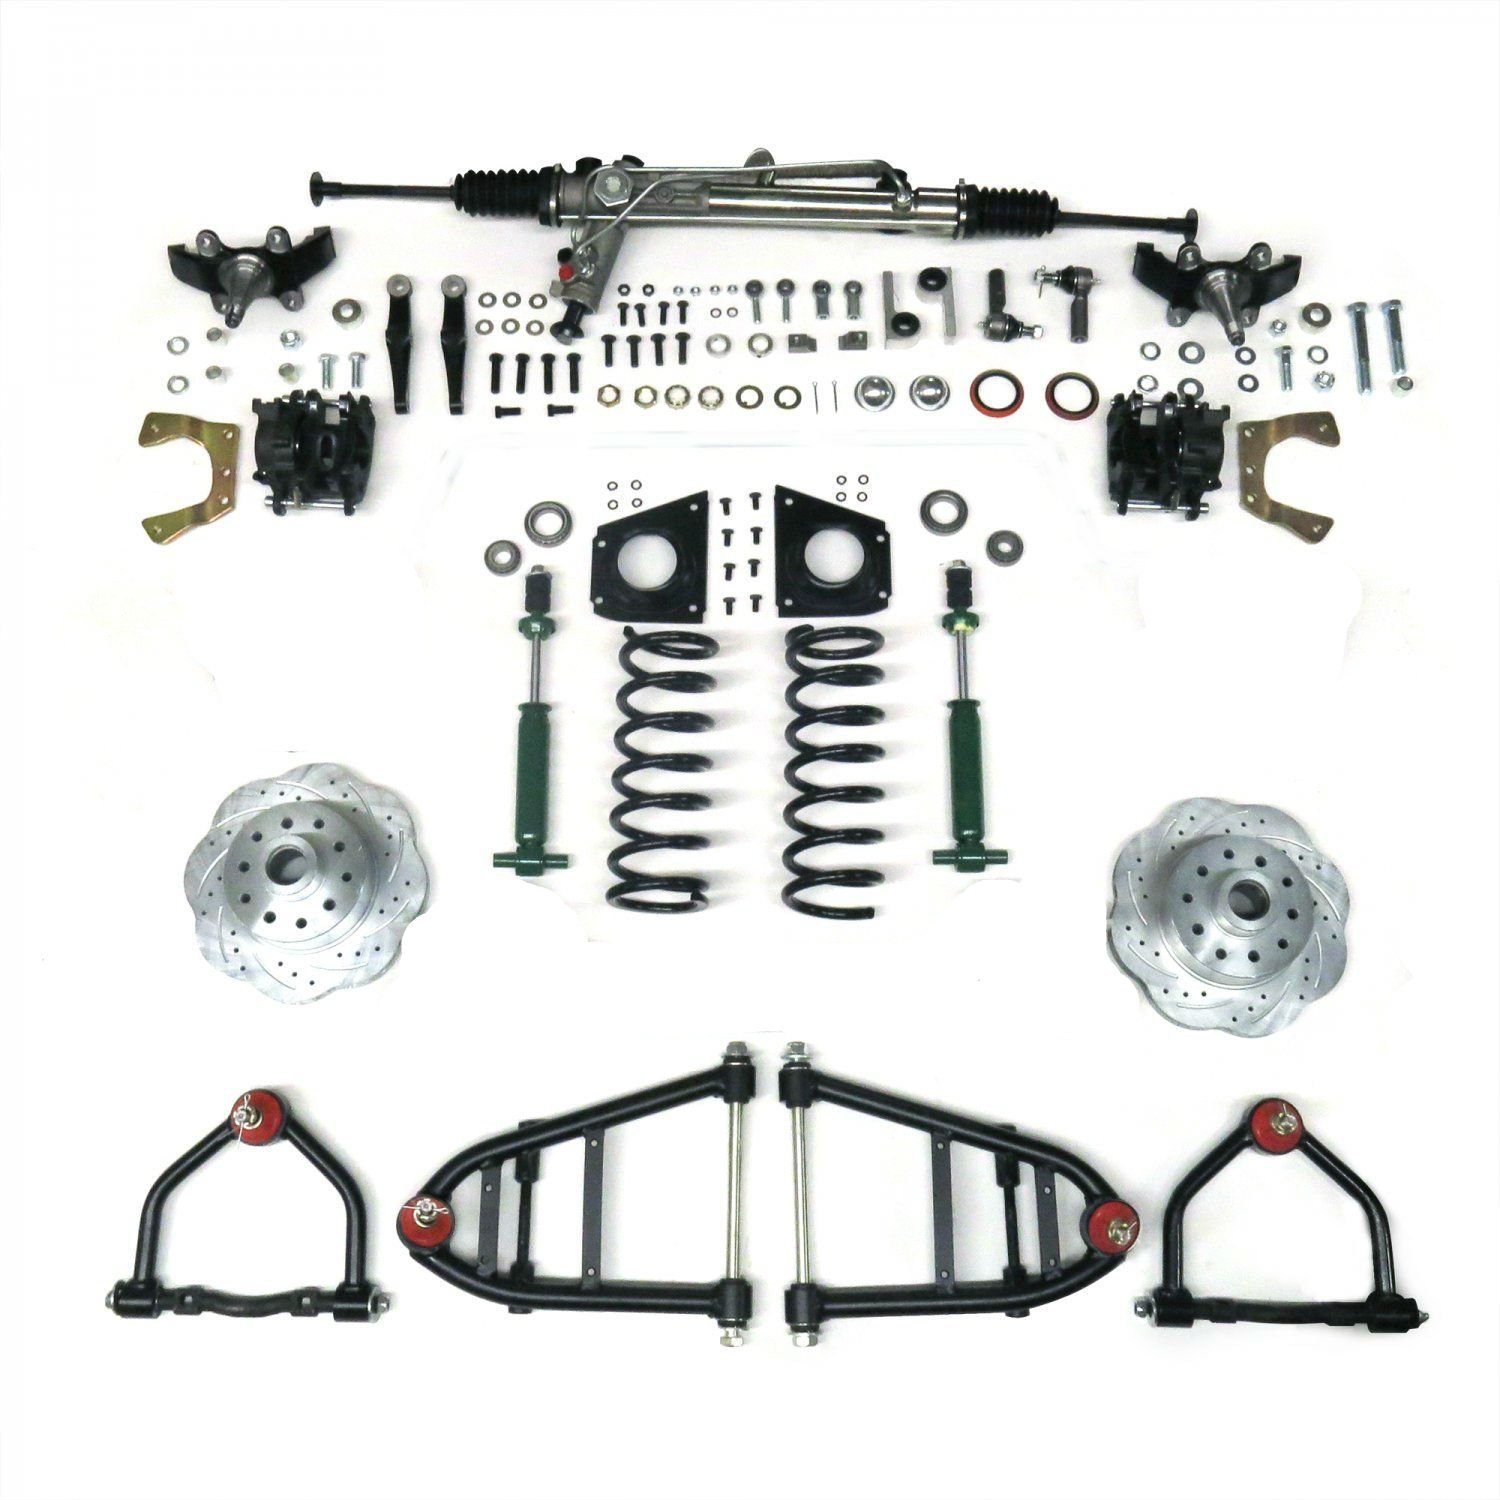 Mustang Ii Ifs Kit With Power Steering Rack For 49 62 Ford